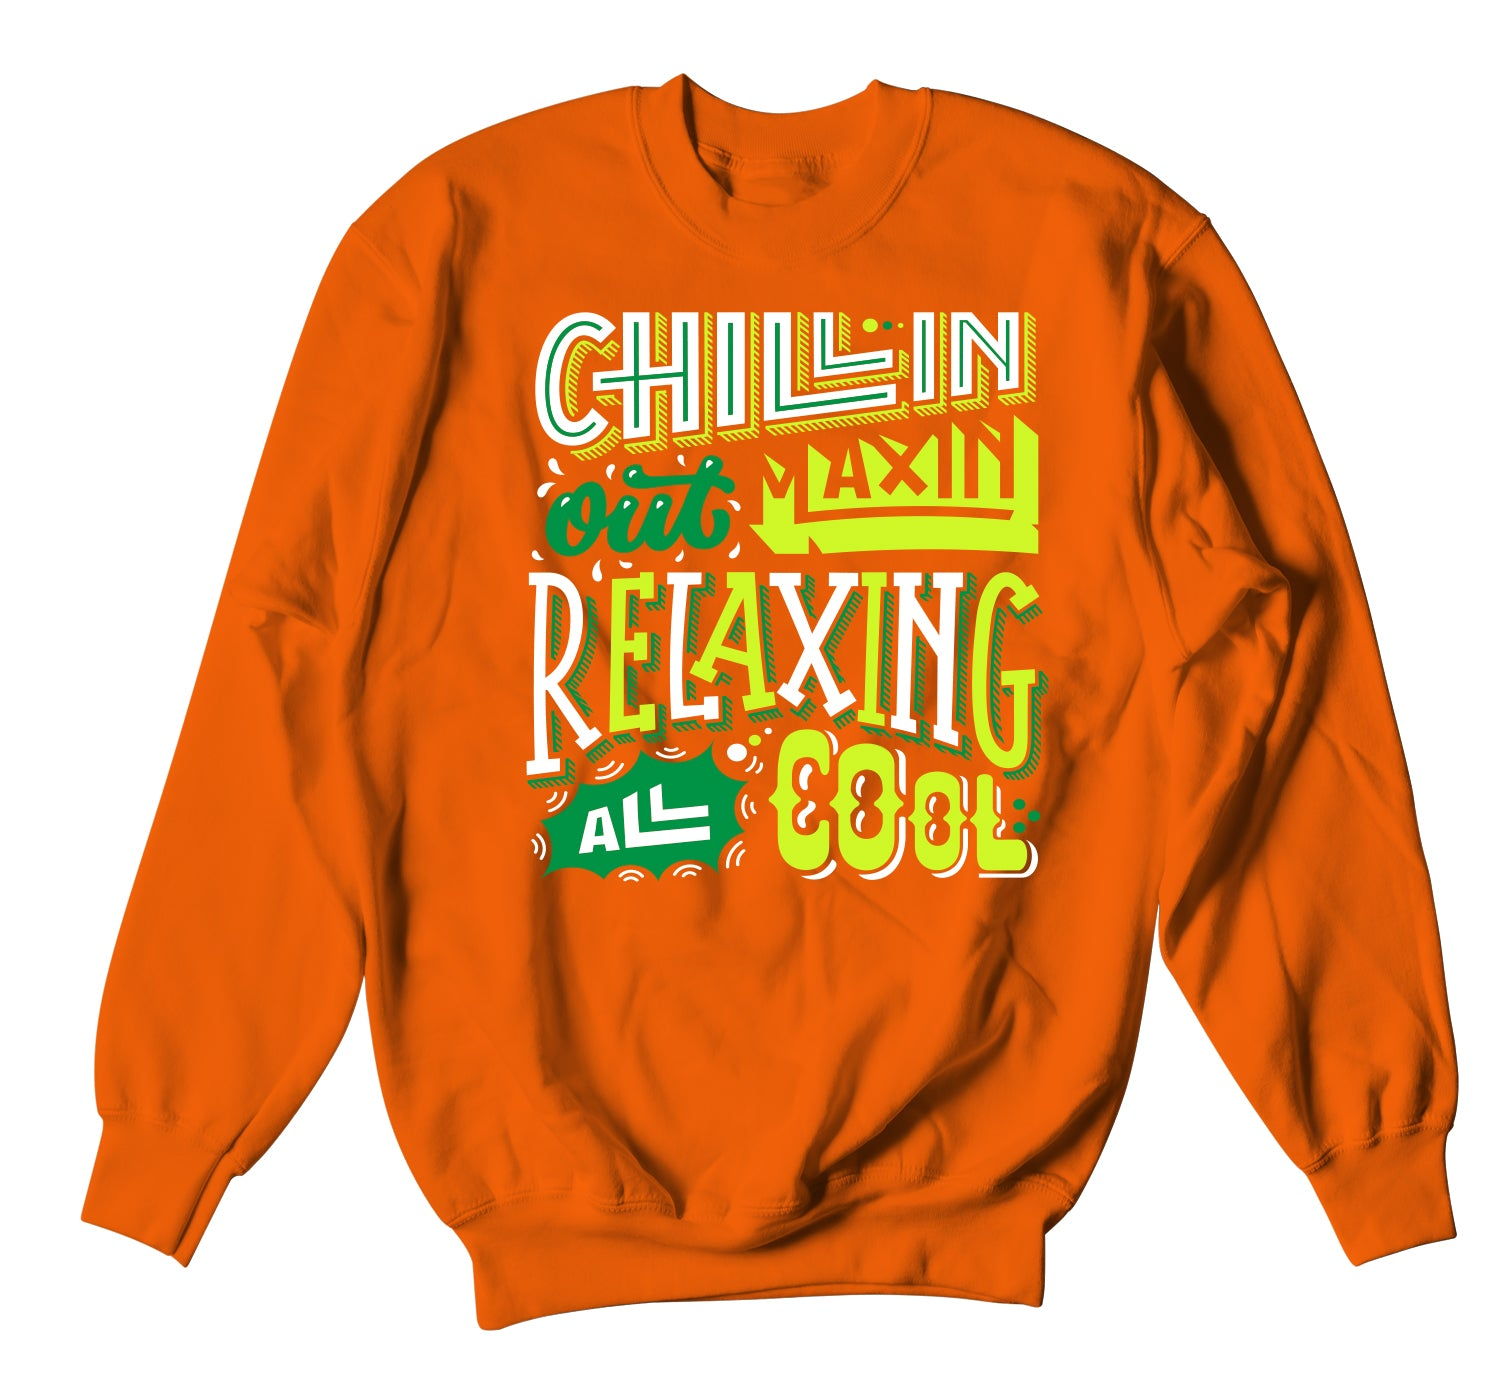 All Star 2020 PG 4 Sweater  - Chillin Relaxin - Orange